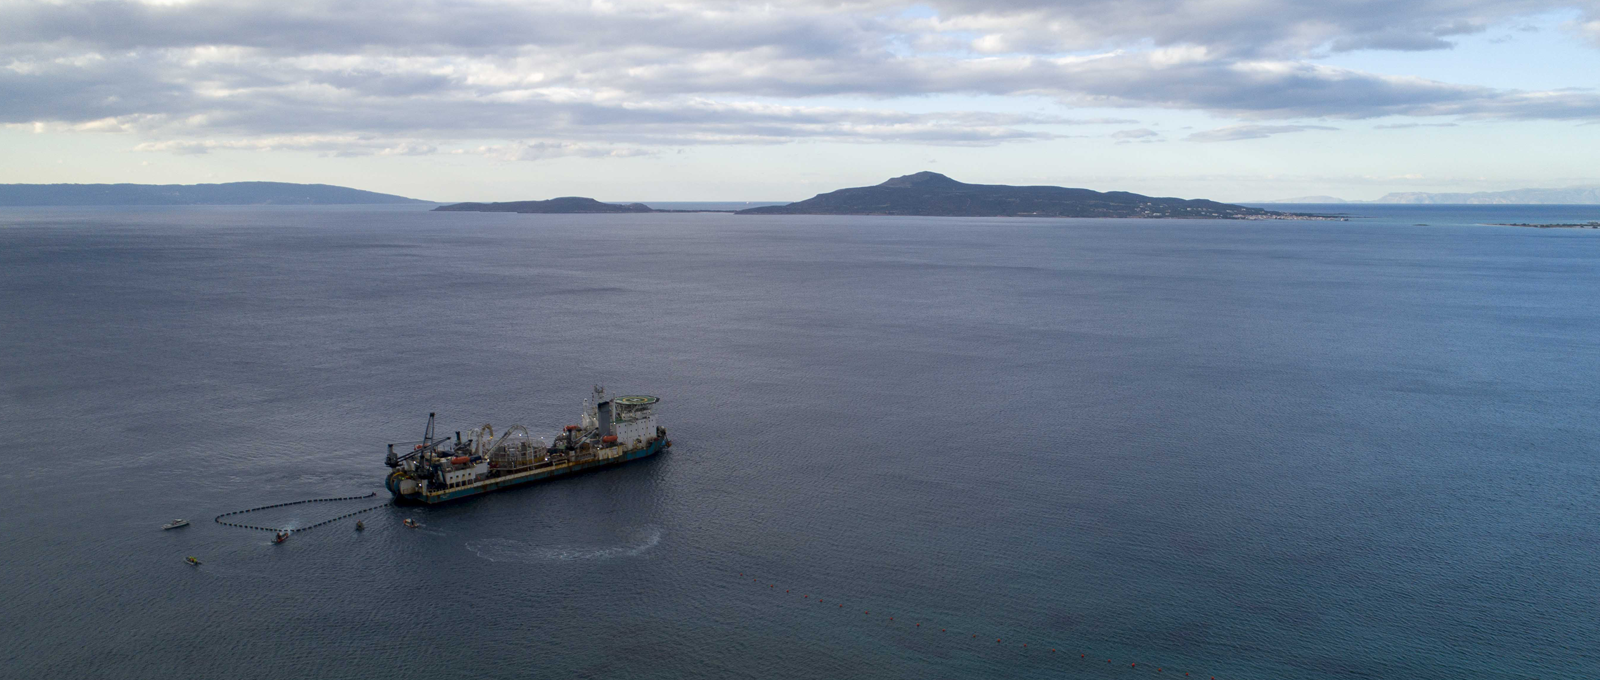 Successful completion of the first ever submarine interconnection between the island of Crete and mainland Greece